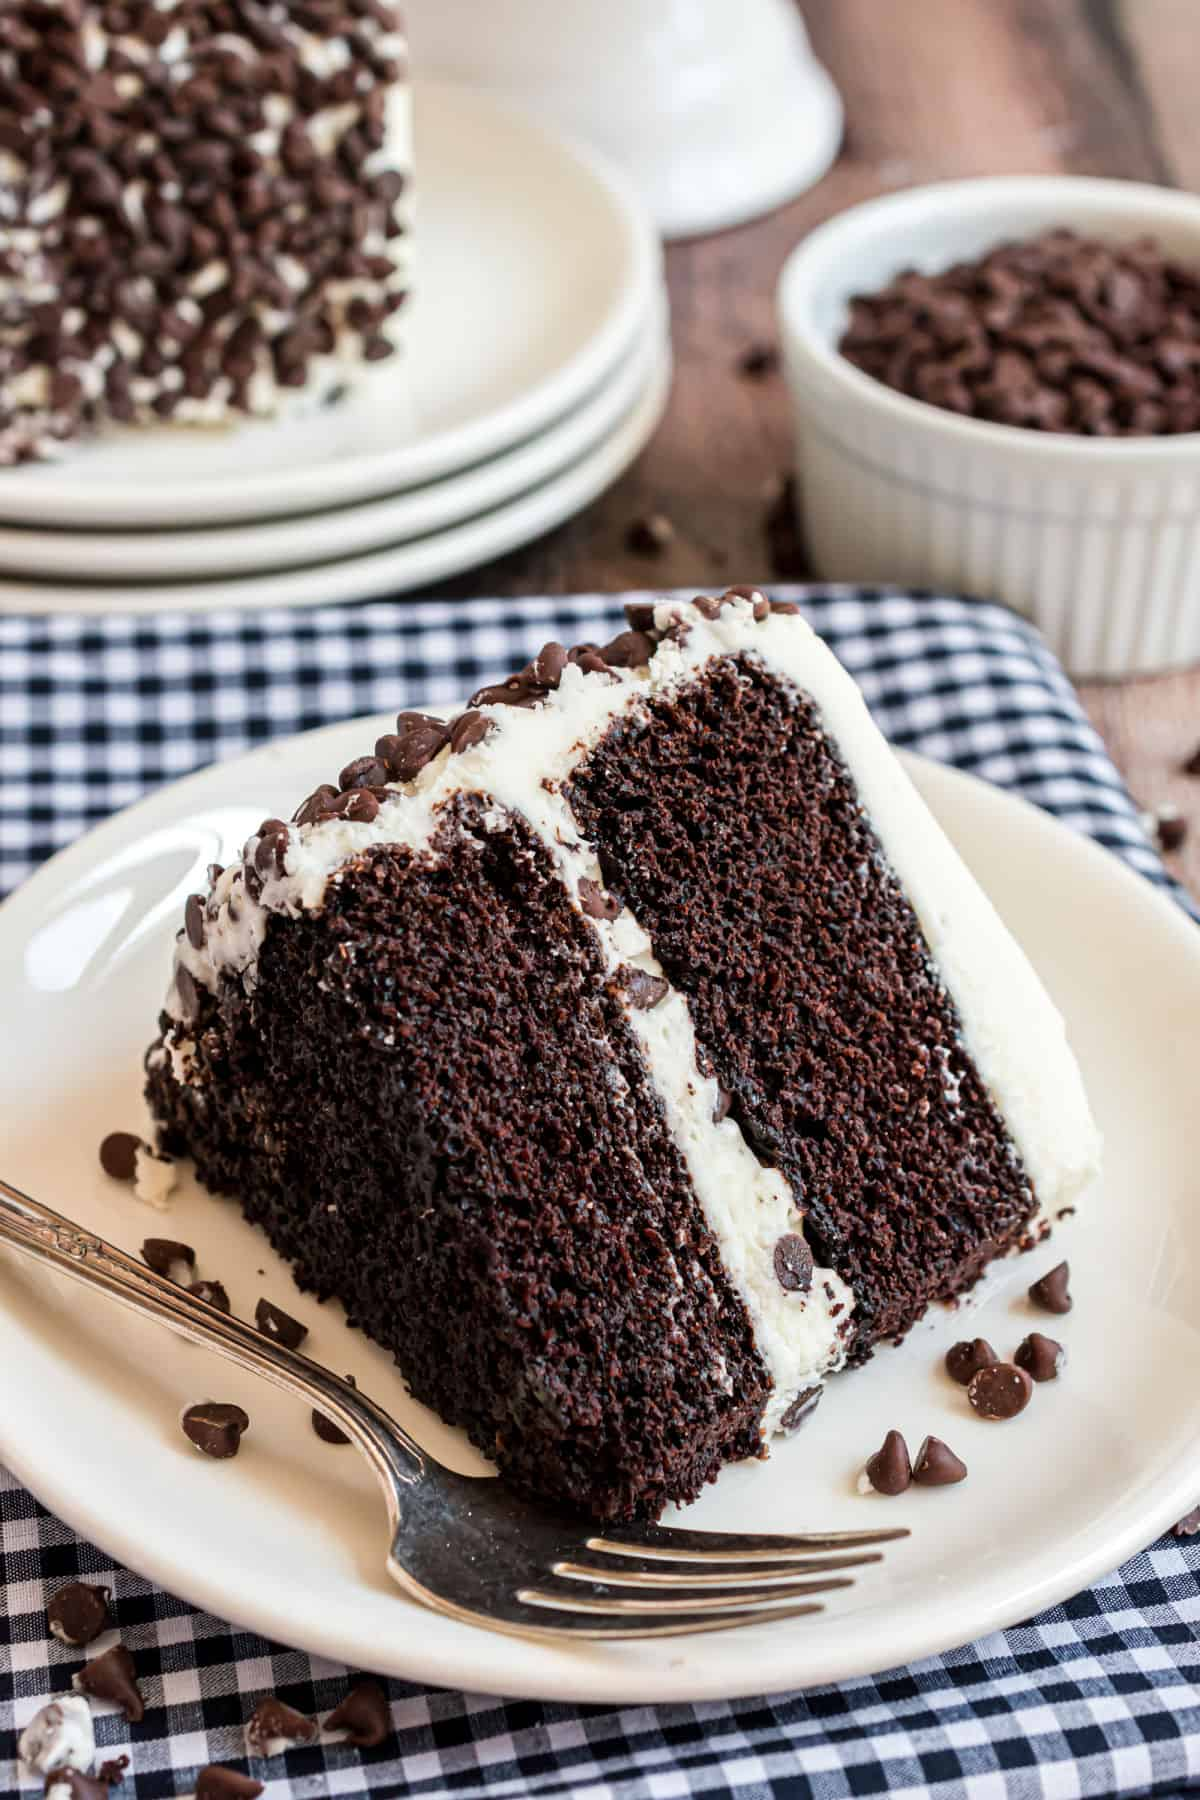 Slice of dark chocolate layer cake with vanilla frosting and chocolate chips.